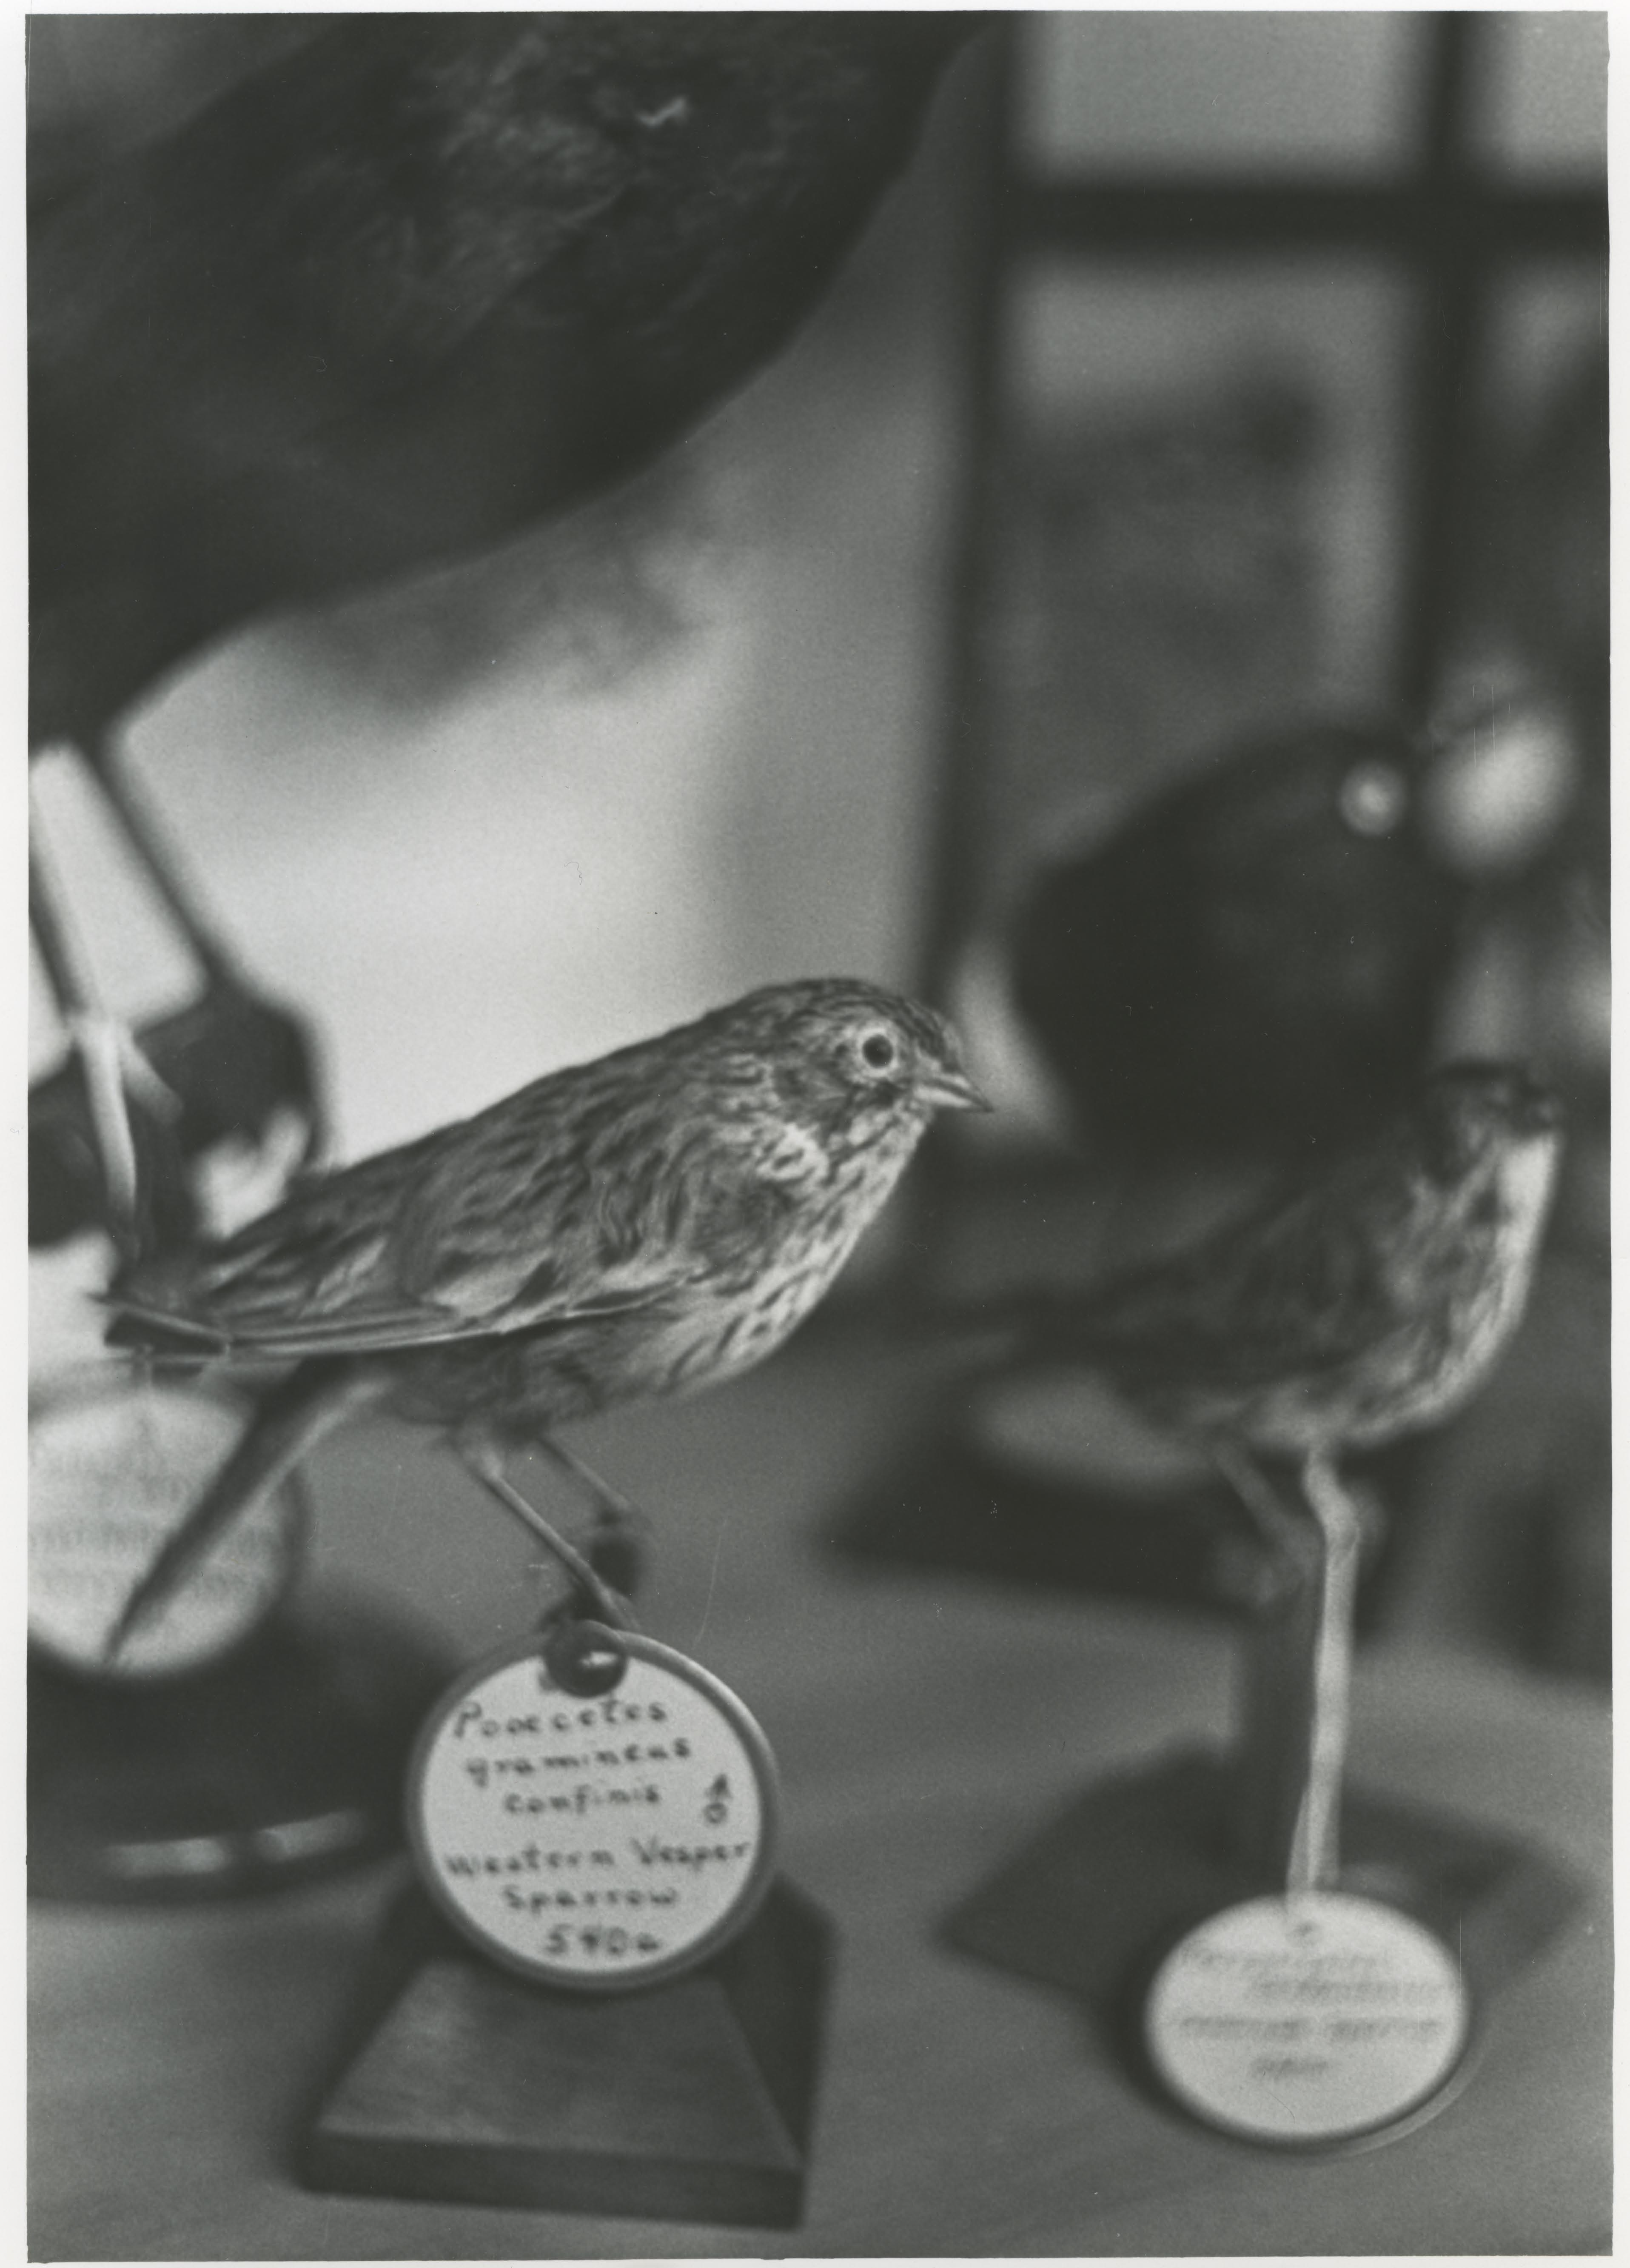 Photo of bird specimens from archives